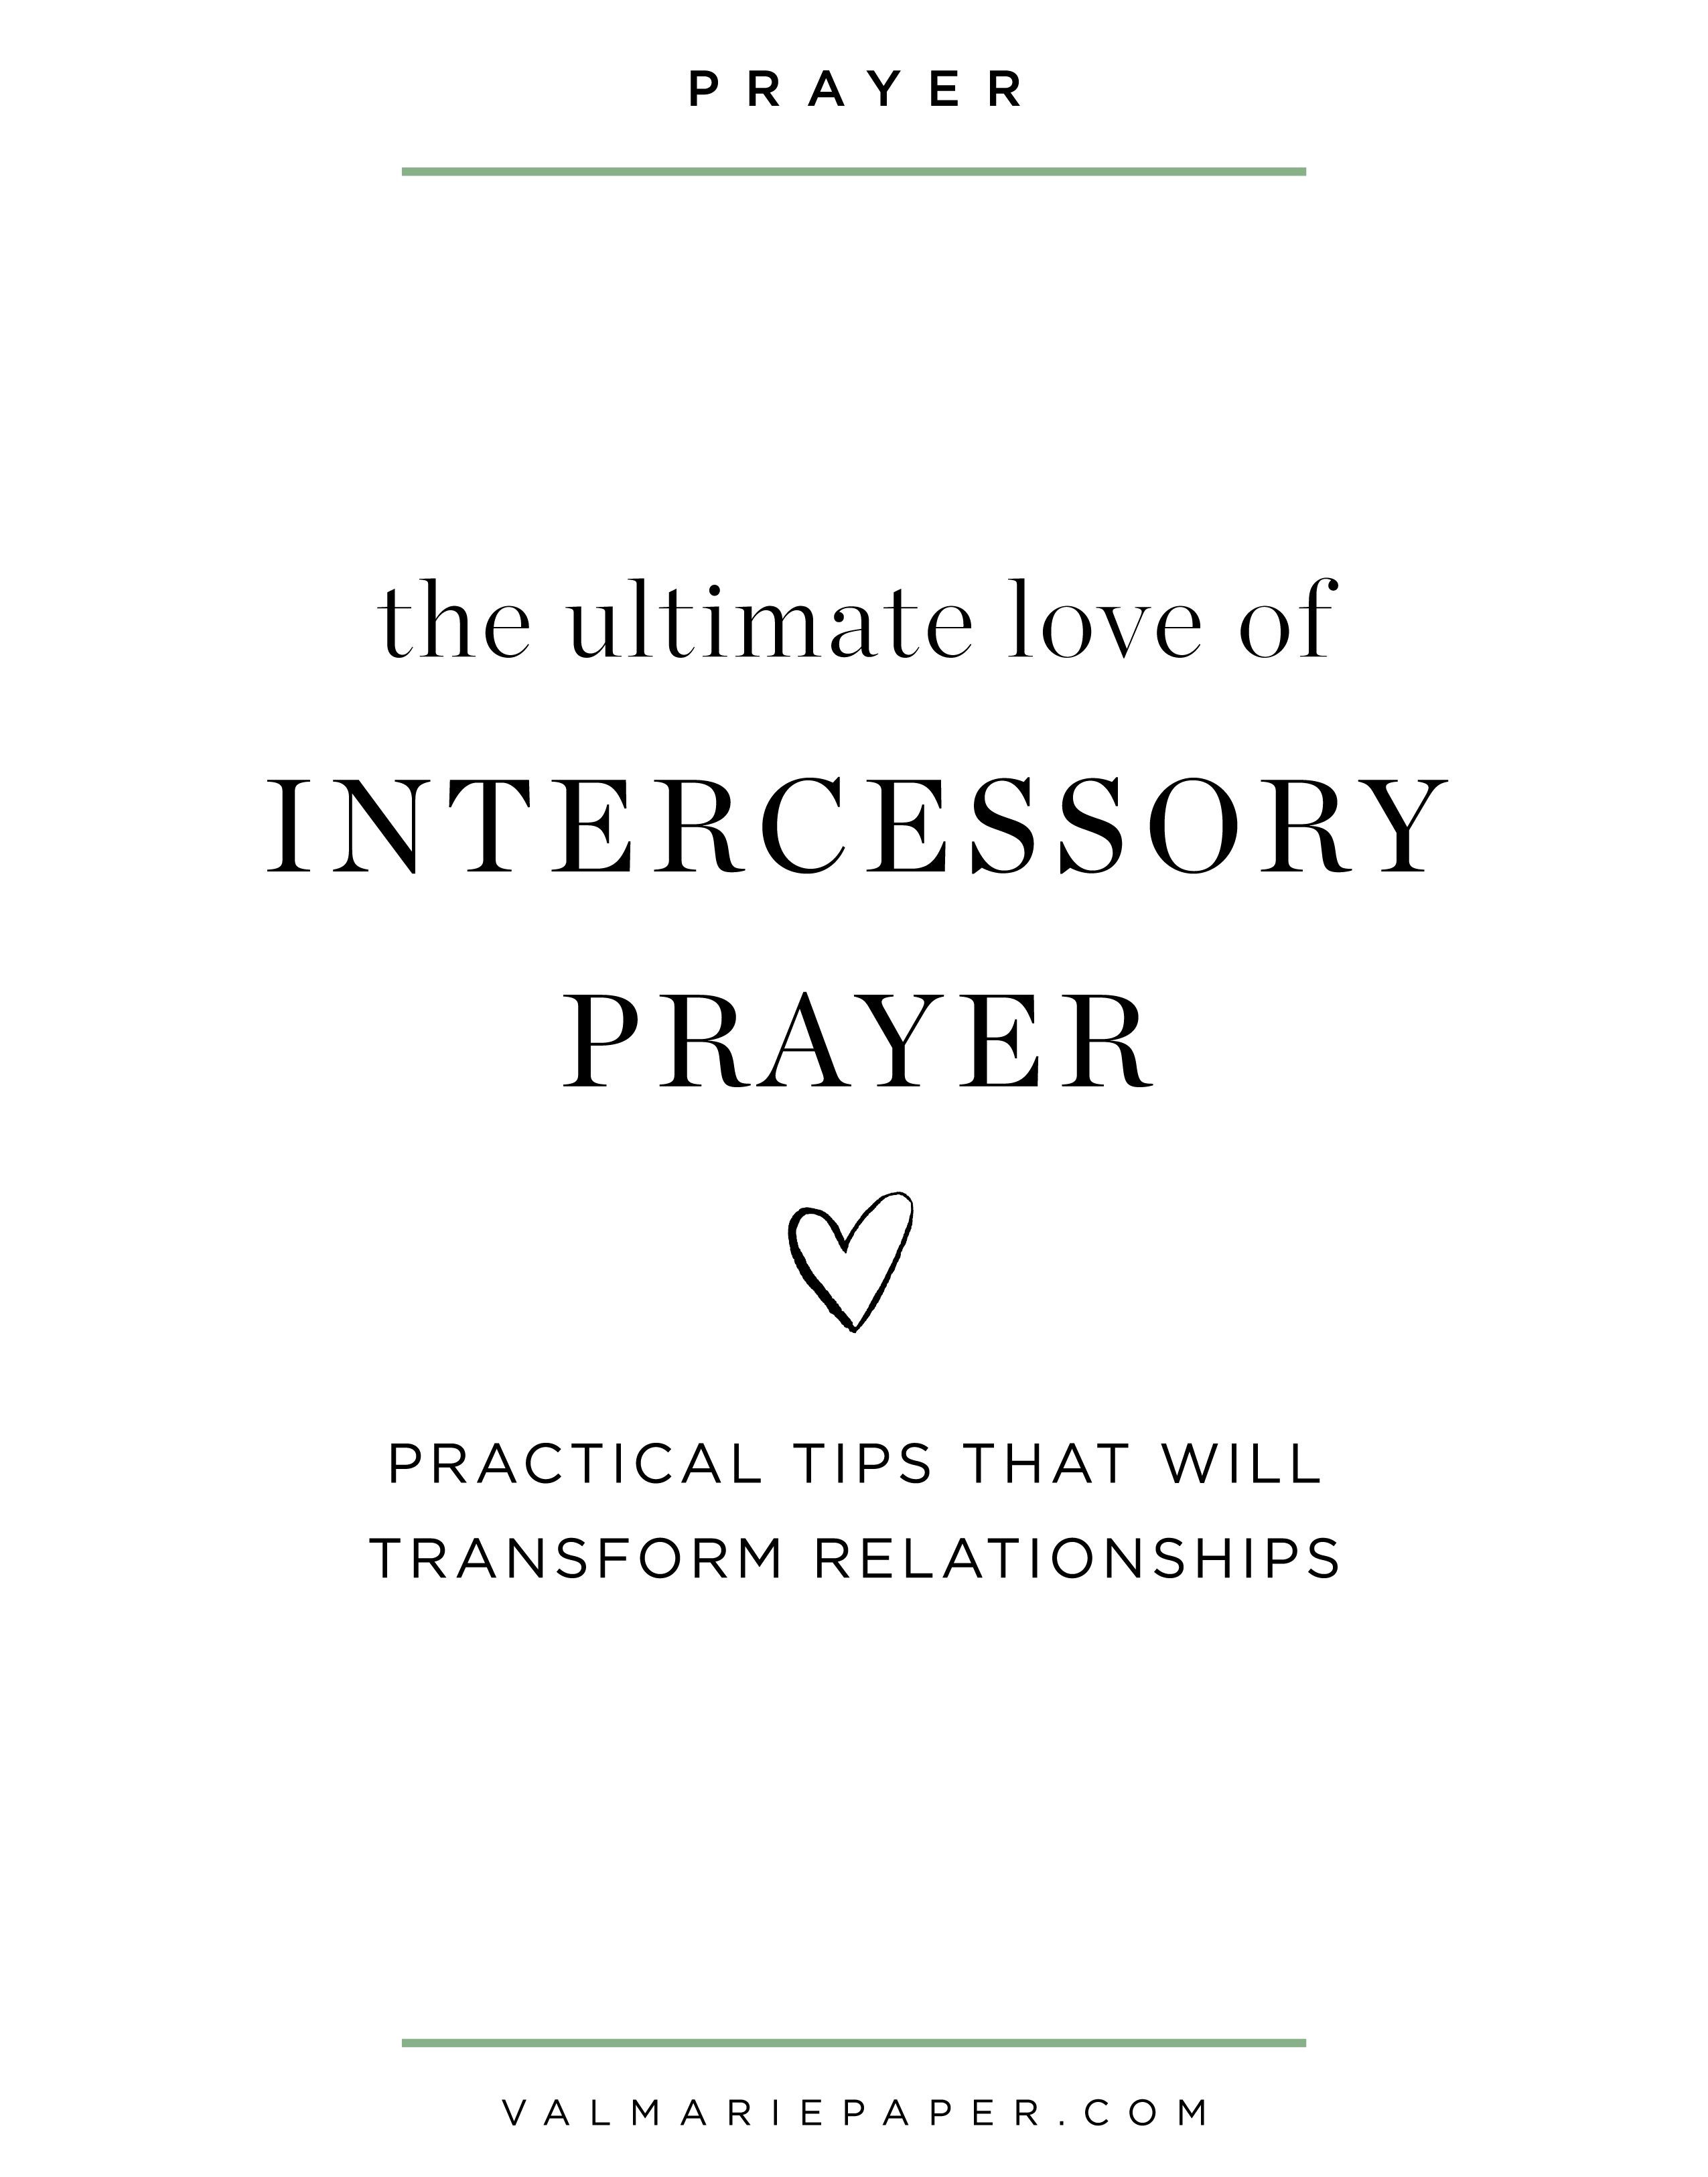 How To Become An Intercessor